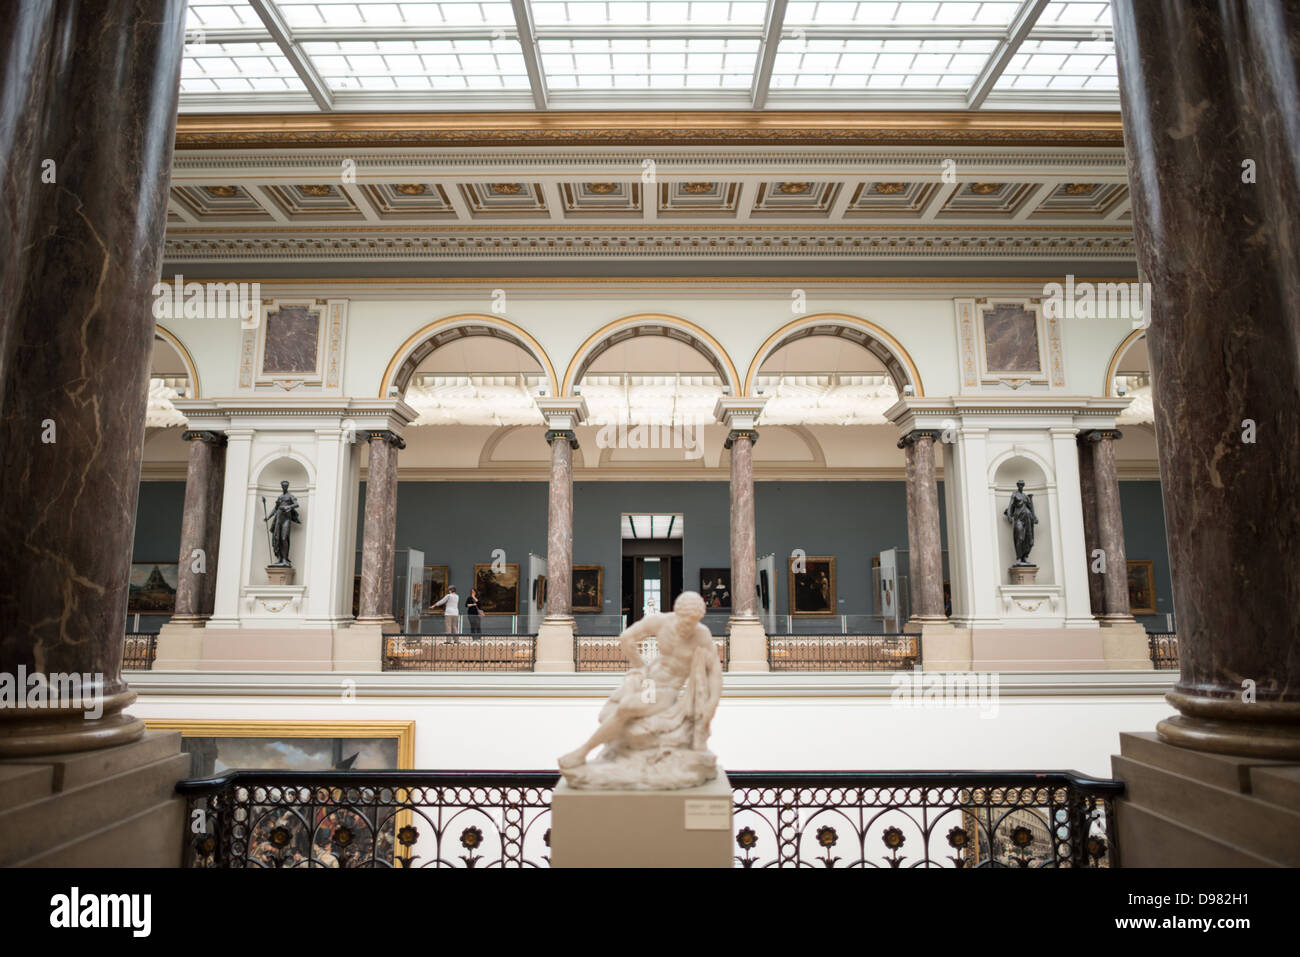 BRUSSELS, Belgium - at the Royal Museums of Fine Arts in Belgium (in French, Musées royaux des Beaux-Arts de - Stock Image